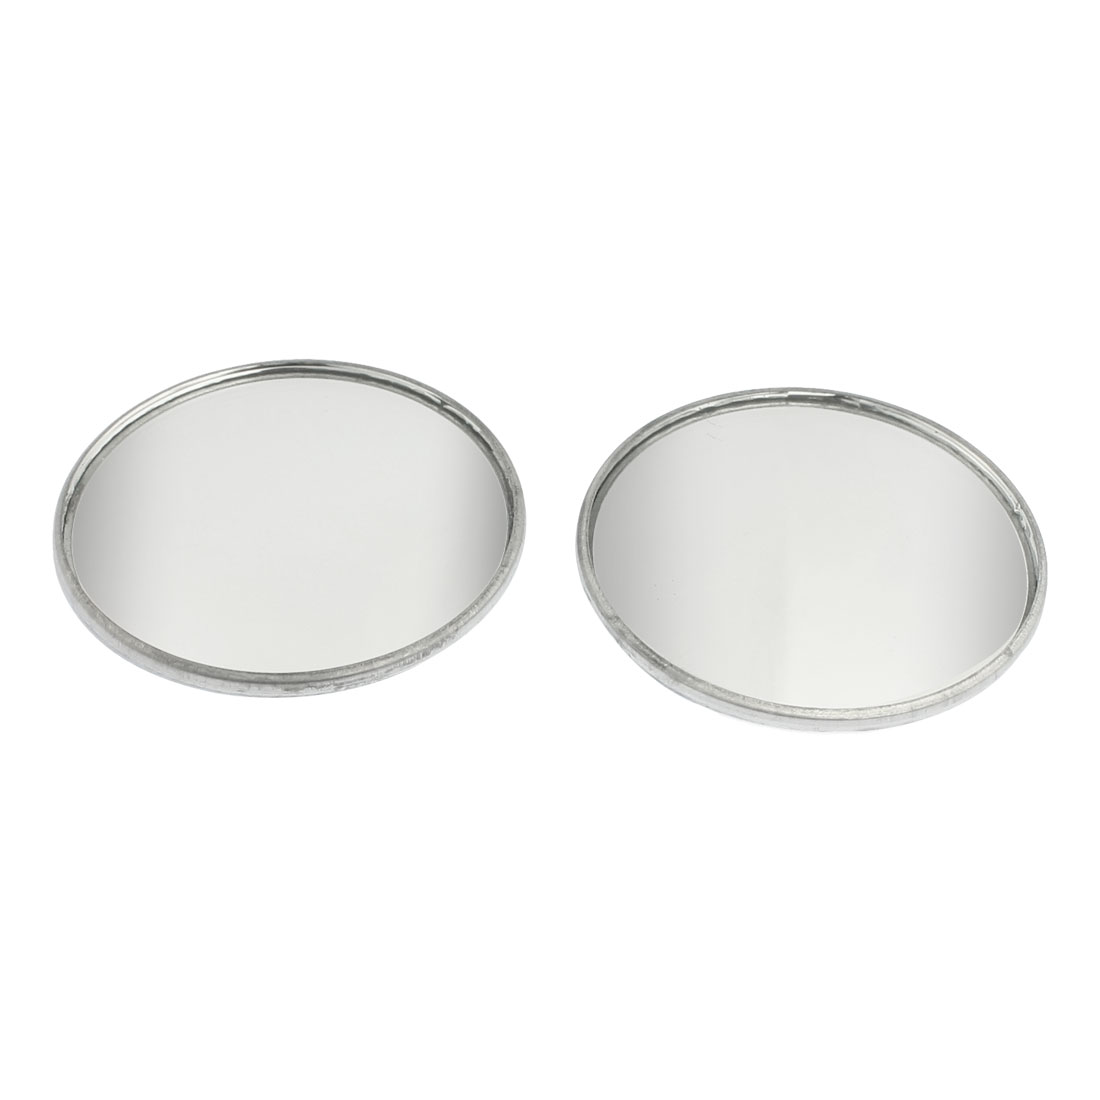 2 Pcs Adhesive Round Side Rearview Blind Spot Mirrors Silver Tone 2""